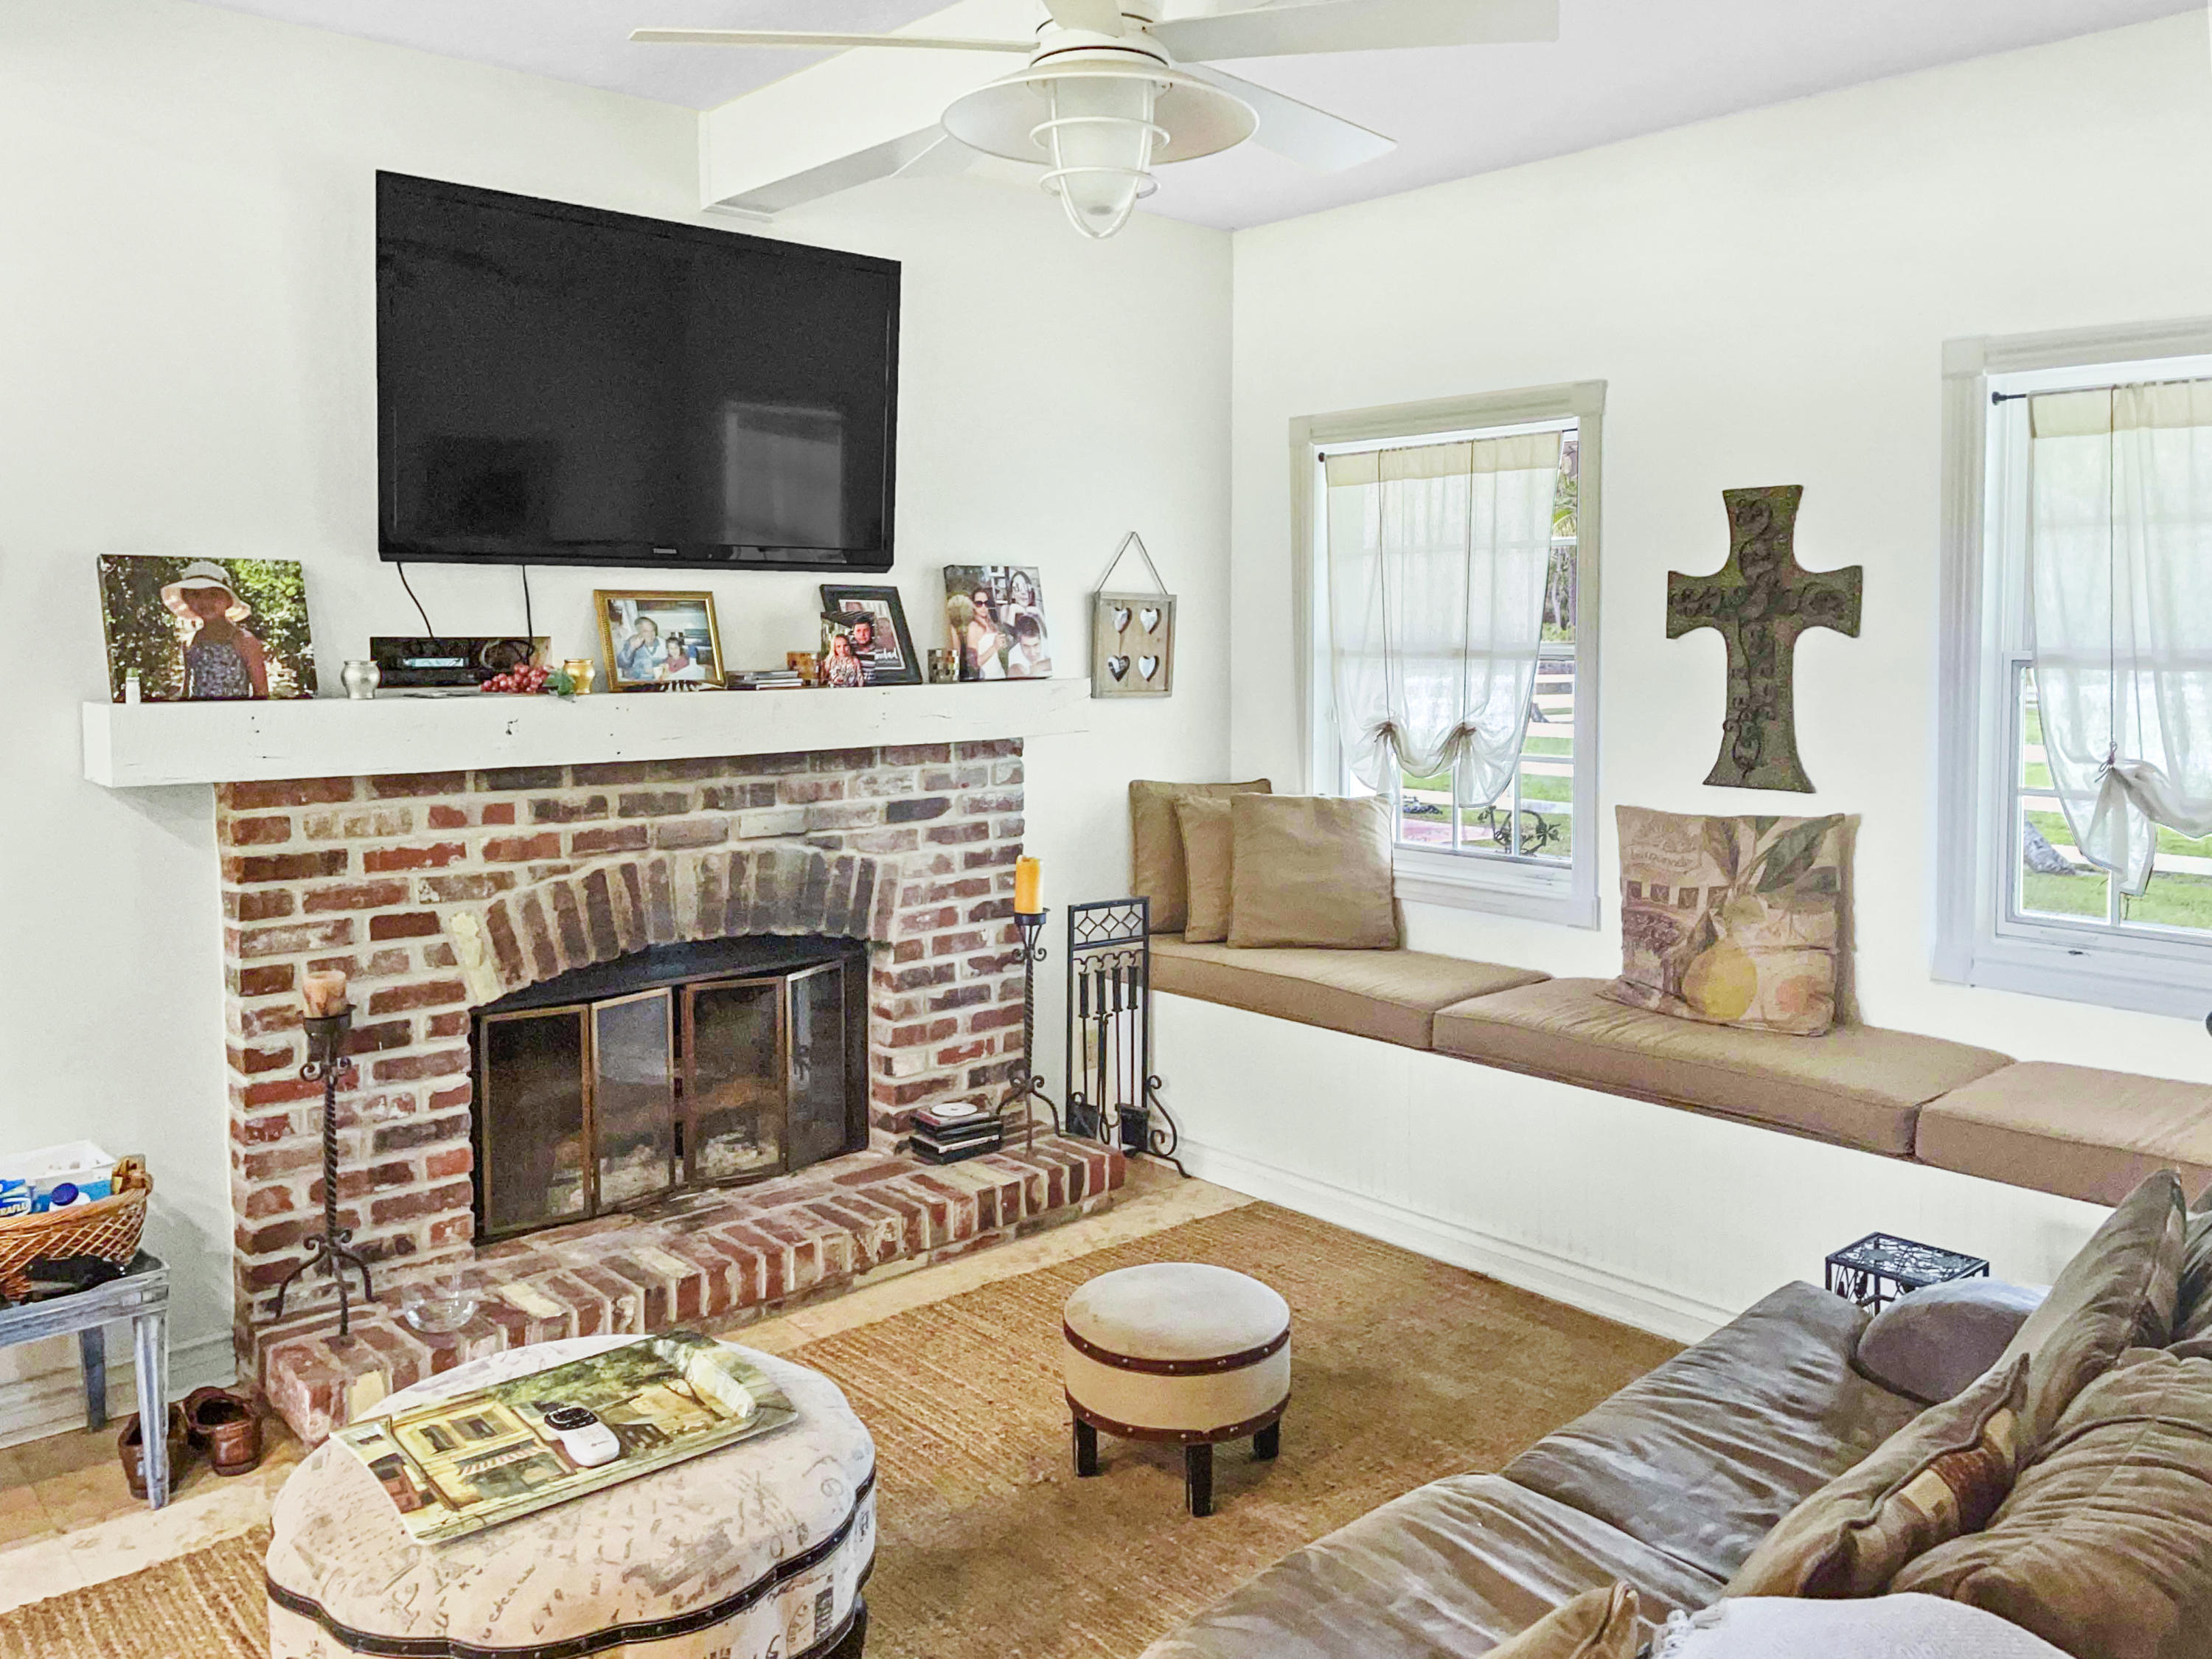 Sitting area off kitchen with fireplace